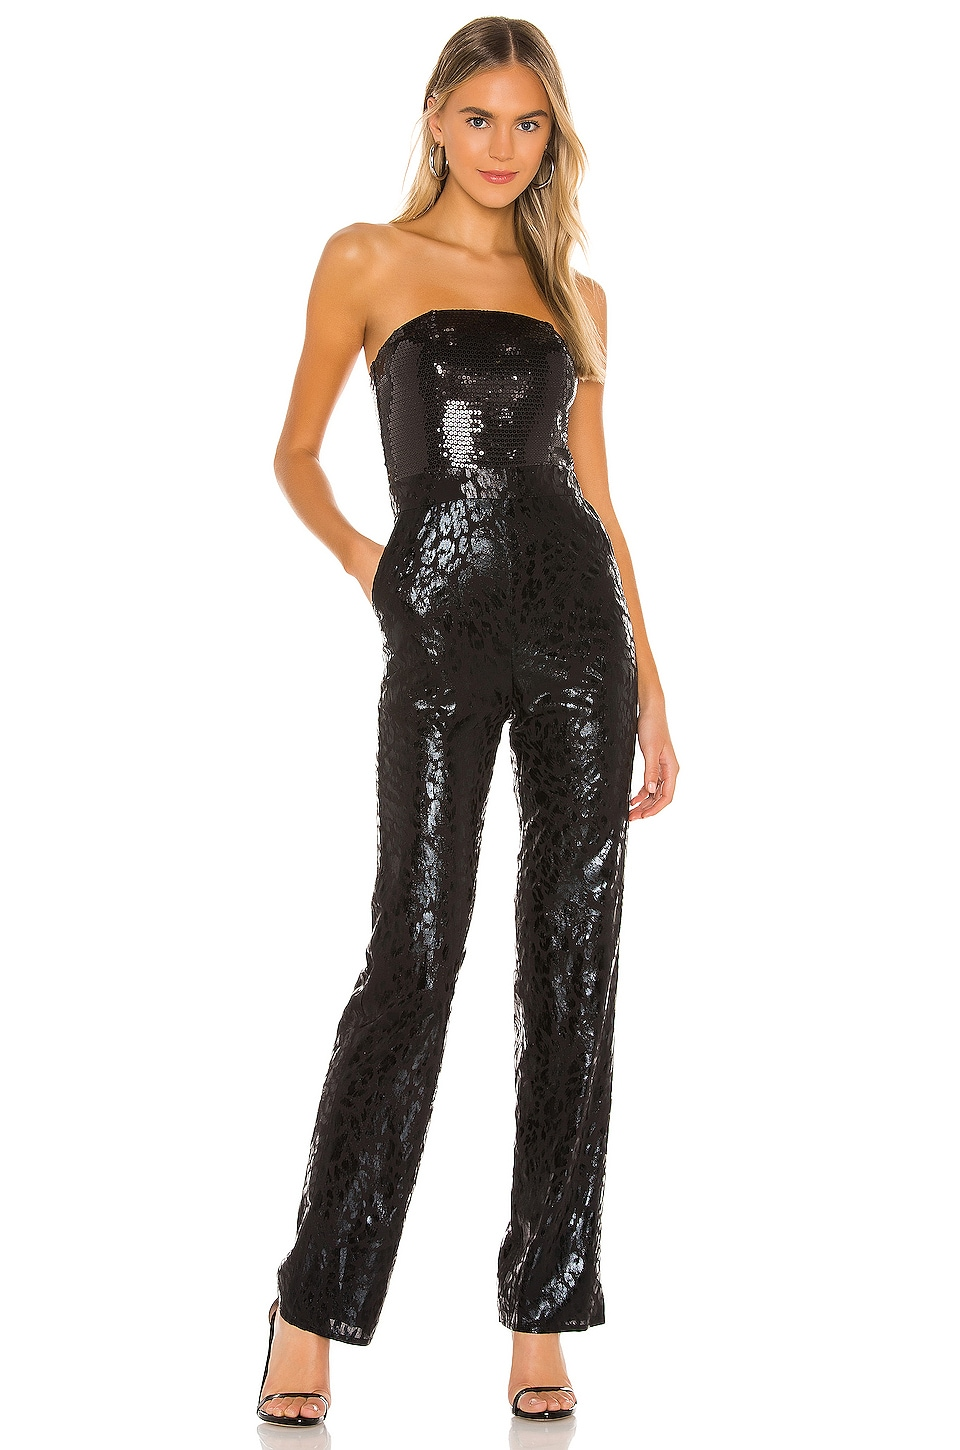 h:ours Calipso Jumpsuit in Black